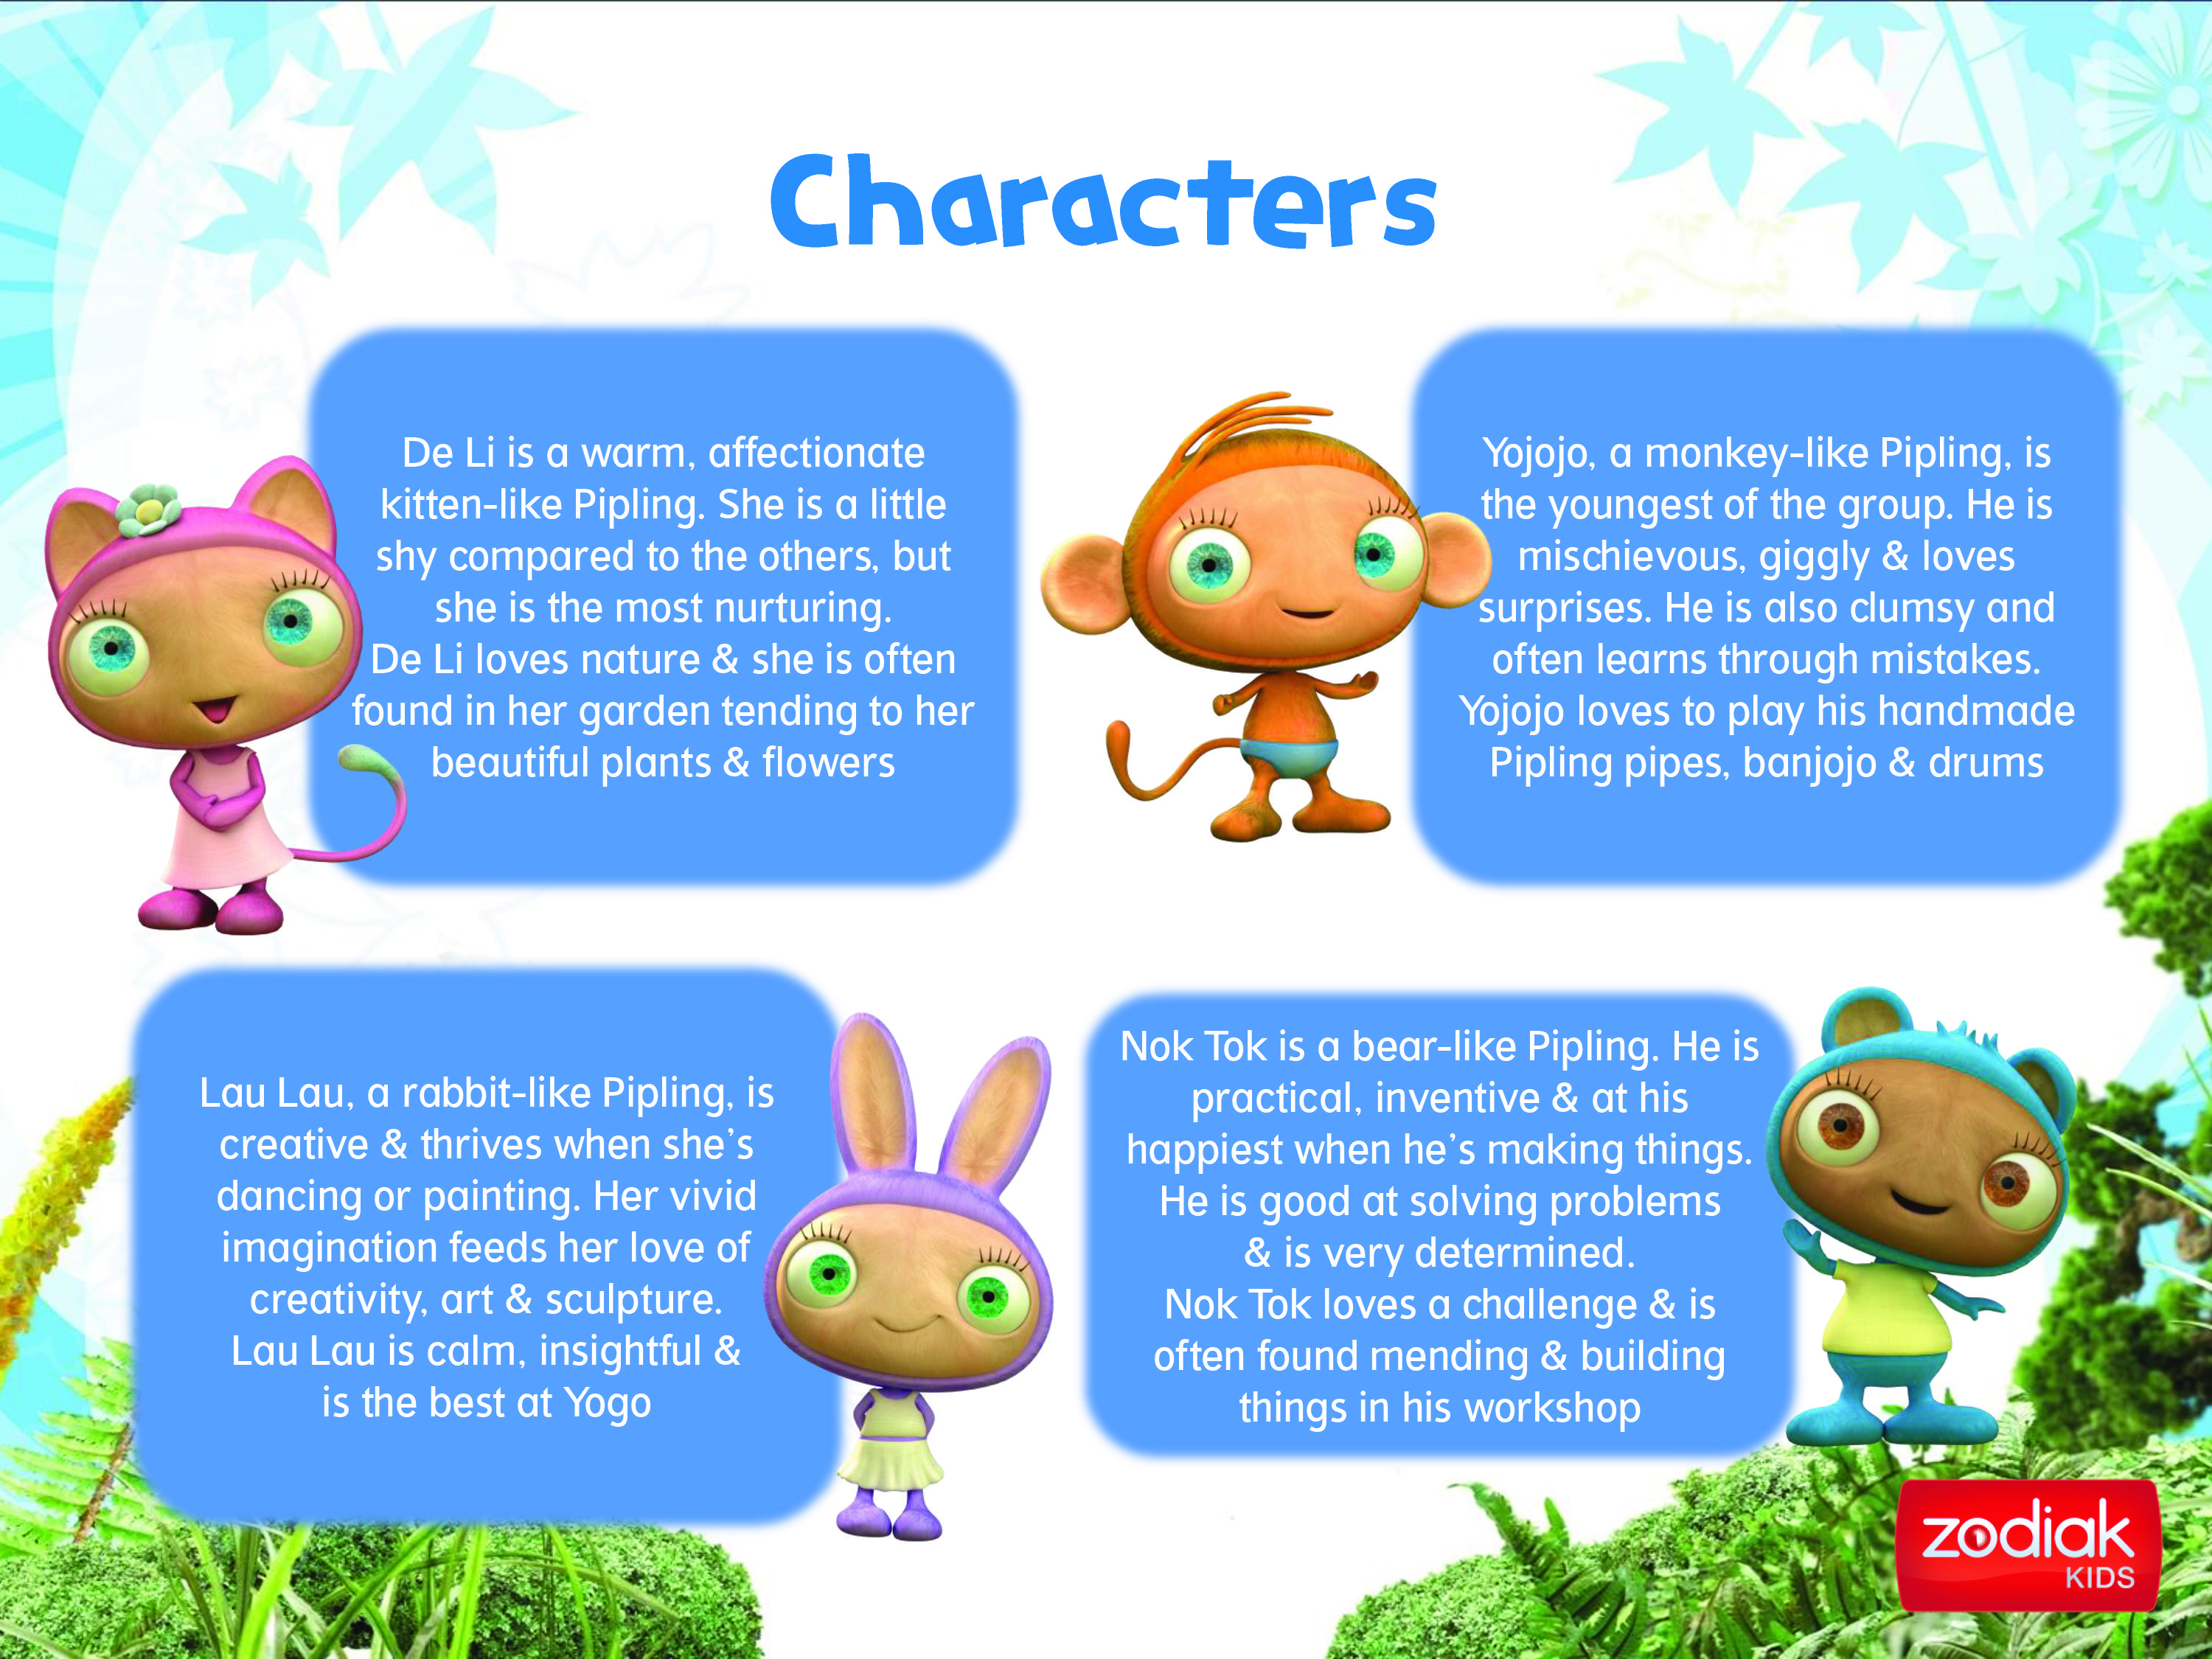 Meet The Piplings Yojojo Is Full Of Fun He S Mischievous And Loves Surprises Lau Lau Is Creative And Loves To Dance Or Paint Nok Tok Is Practical And Invent